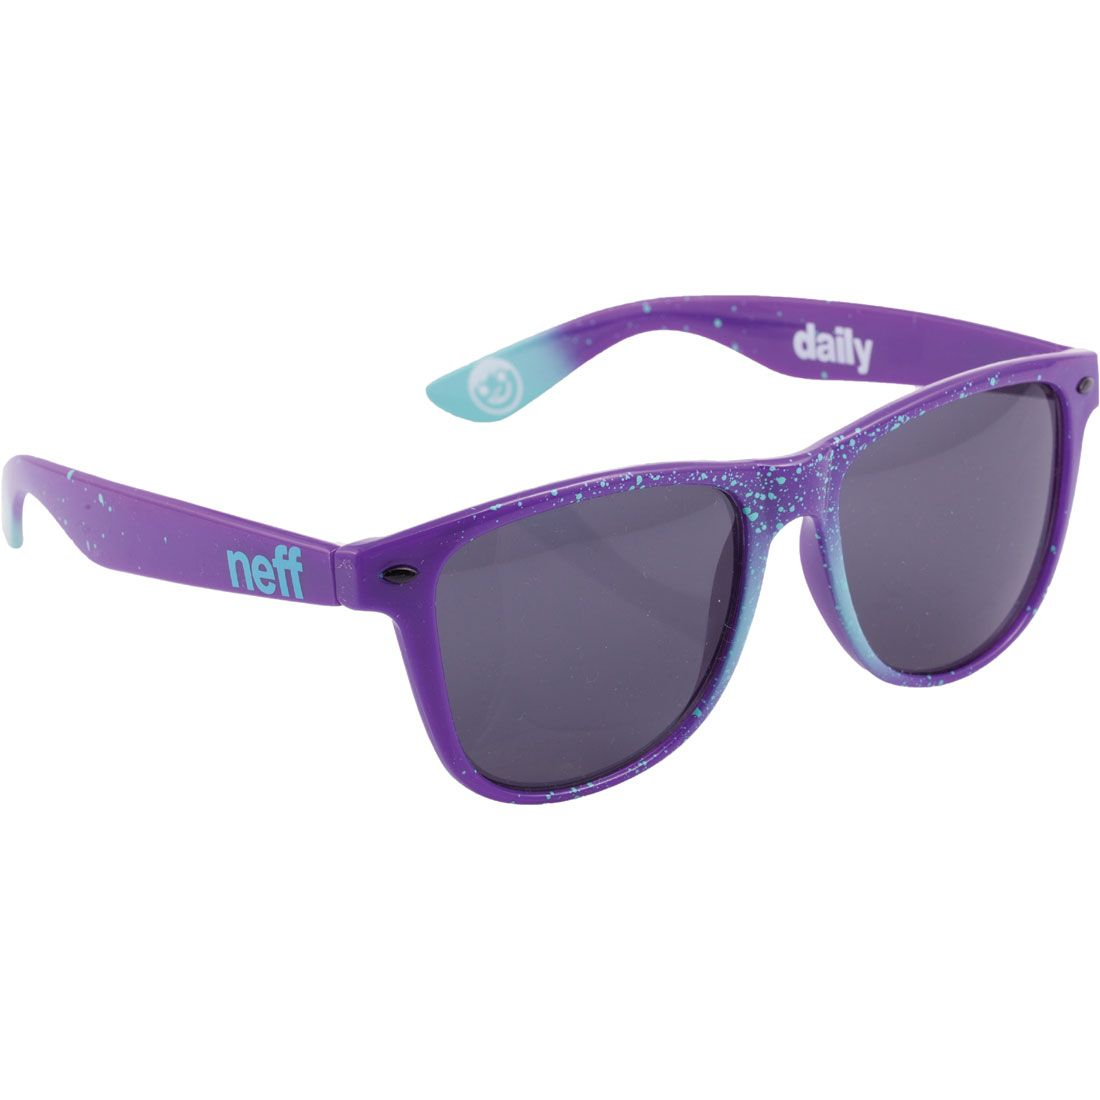 Neff Men's Daily All Lens Shades Sunglasses Gray K58r9O